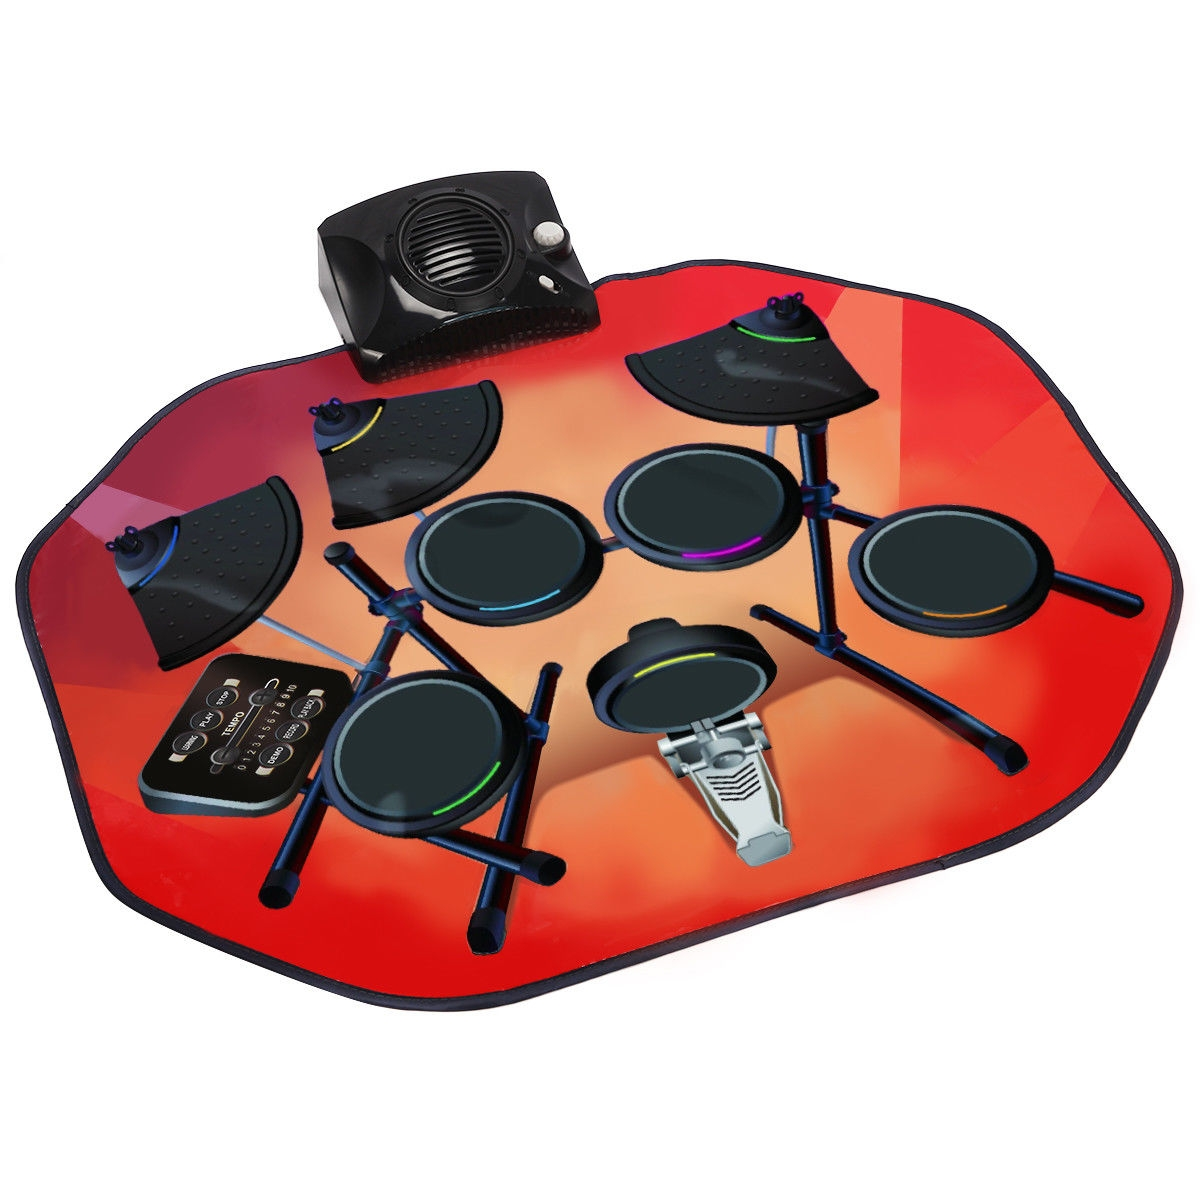 Electronic Glowing Play Drum Mats Kit Set with MP3 Cable